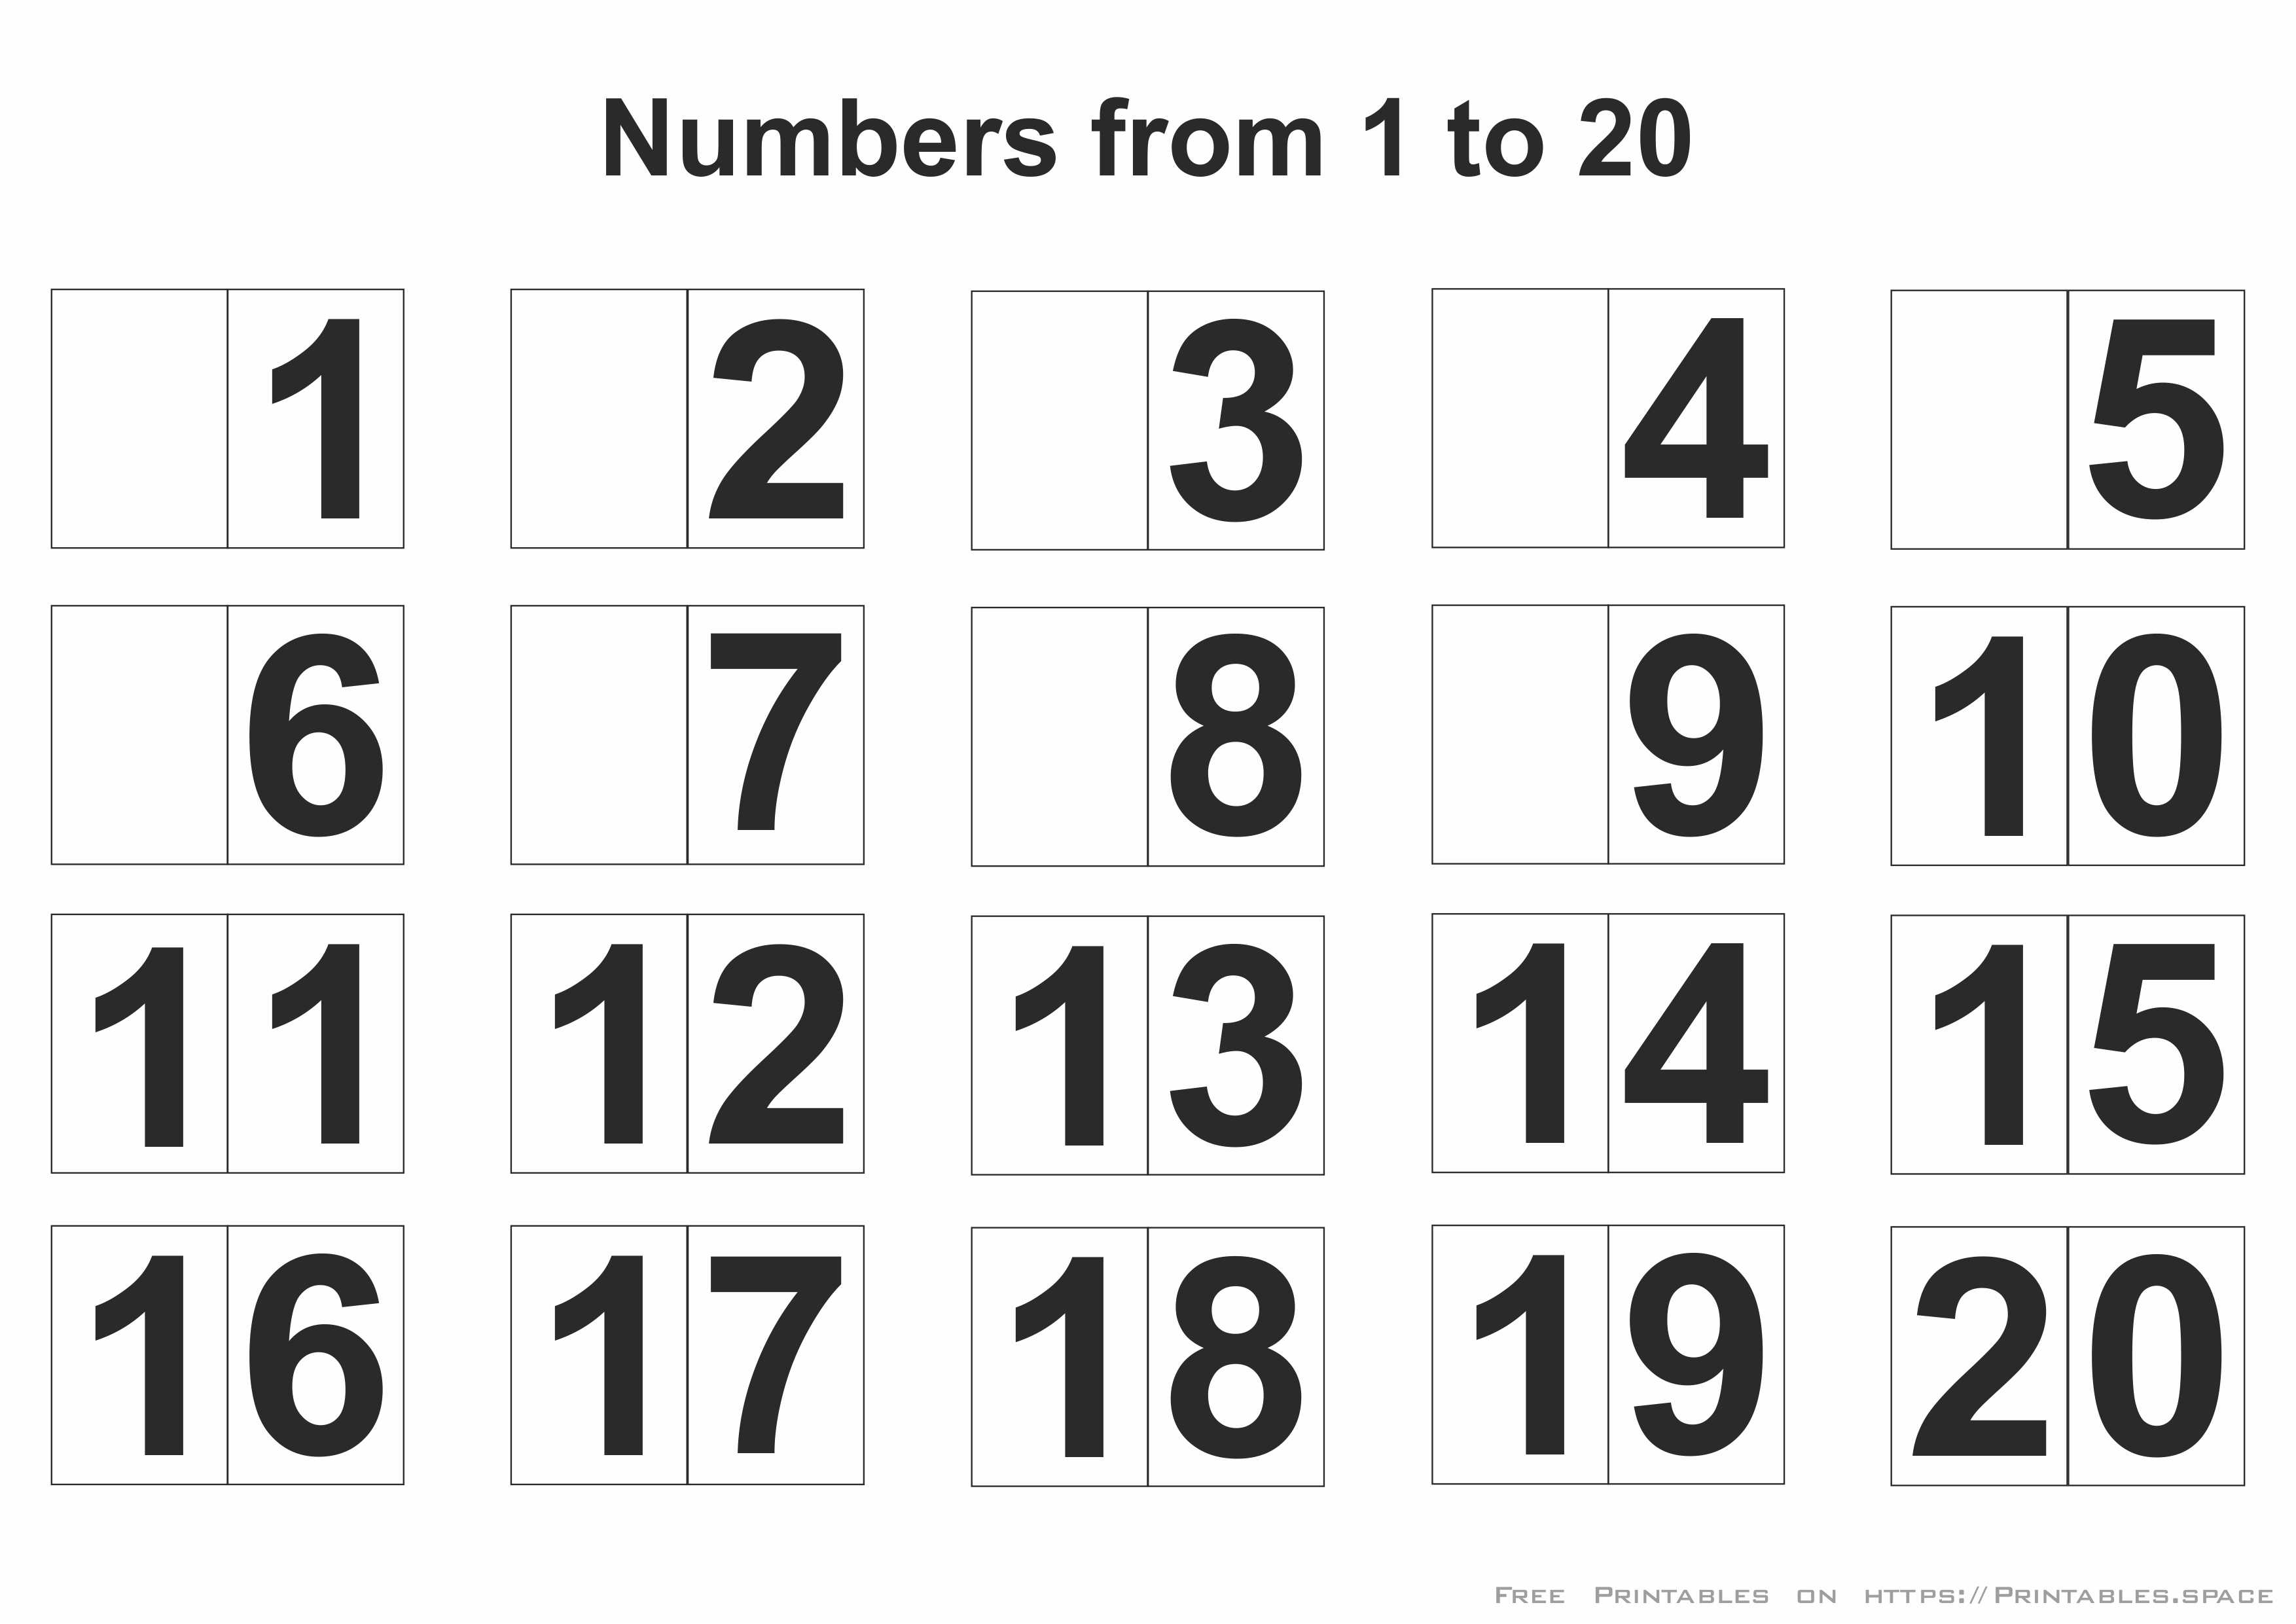 Printable Numbers 1-20 - Free Printables - Free Printable Numbers 1 20